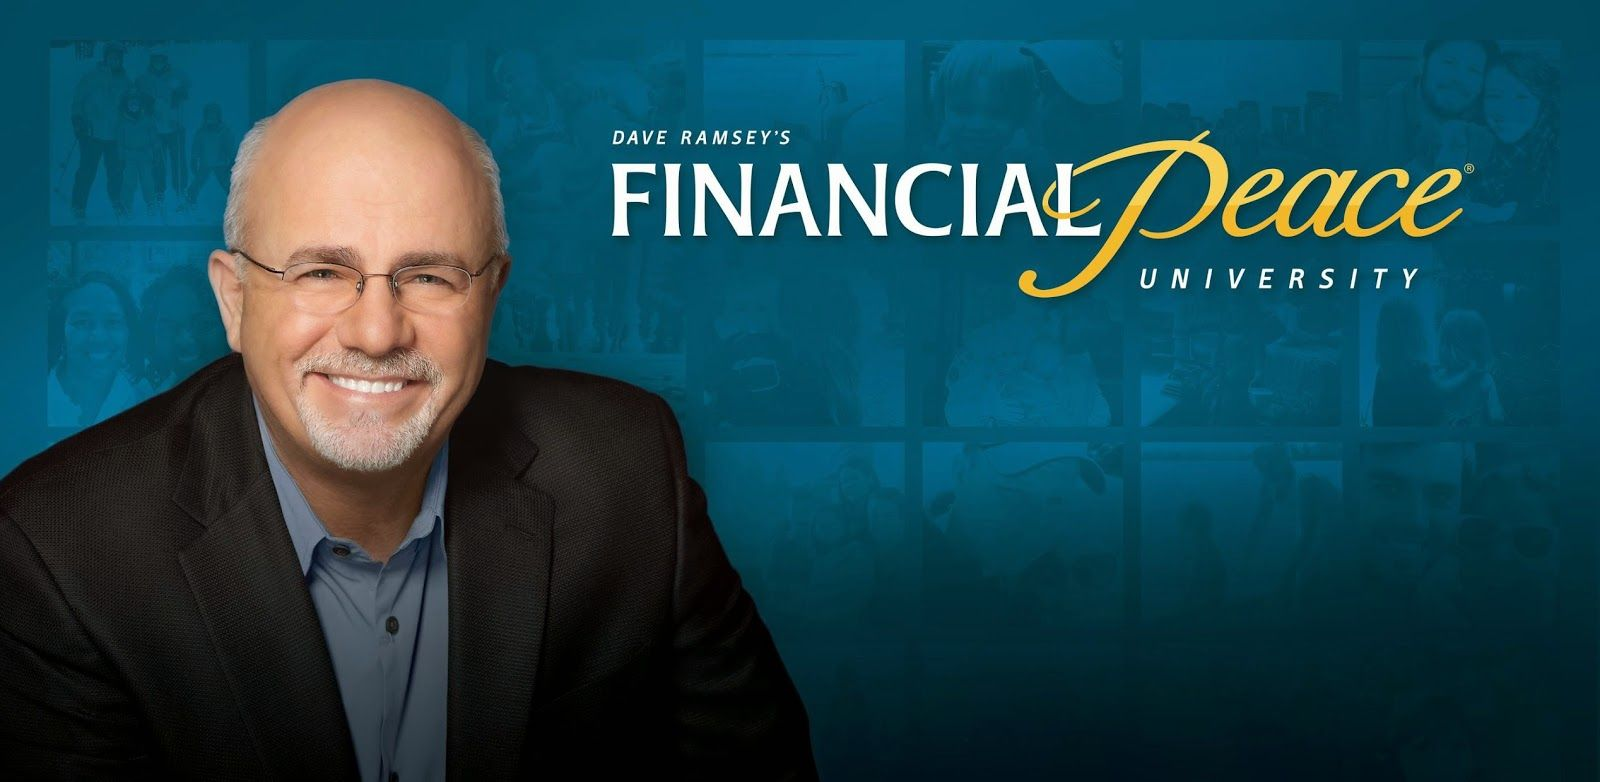 Dave ramseys fpu class review dave ramsey dave ramsey